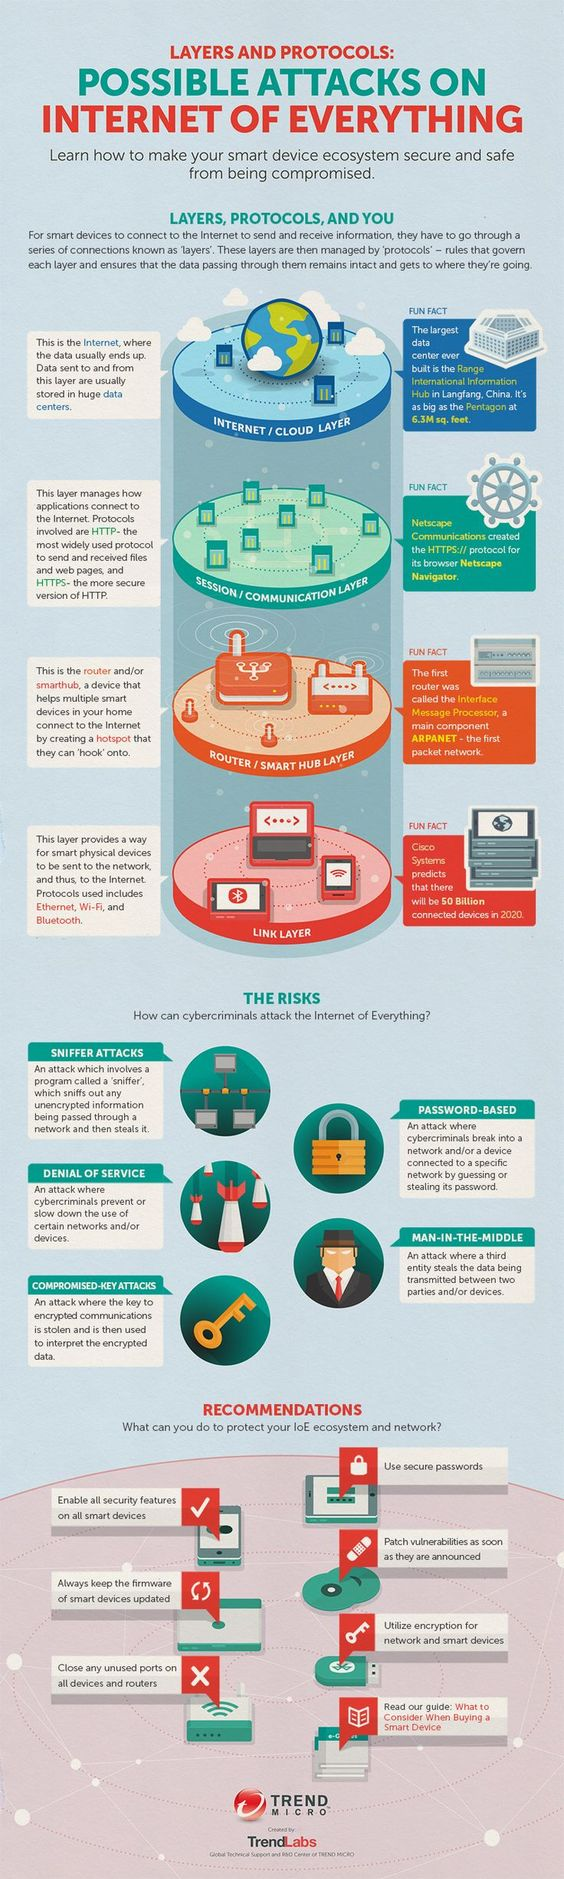 An Internet of Things (IoT) Infographic liked by #Fabacus >Possible Attacks on The Internet of Everything Infographic